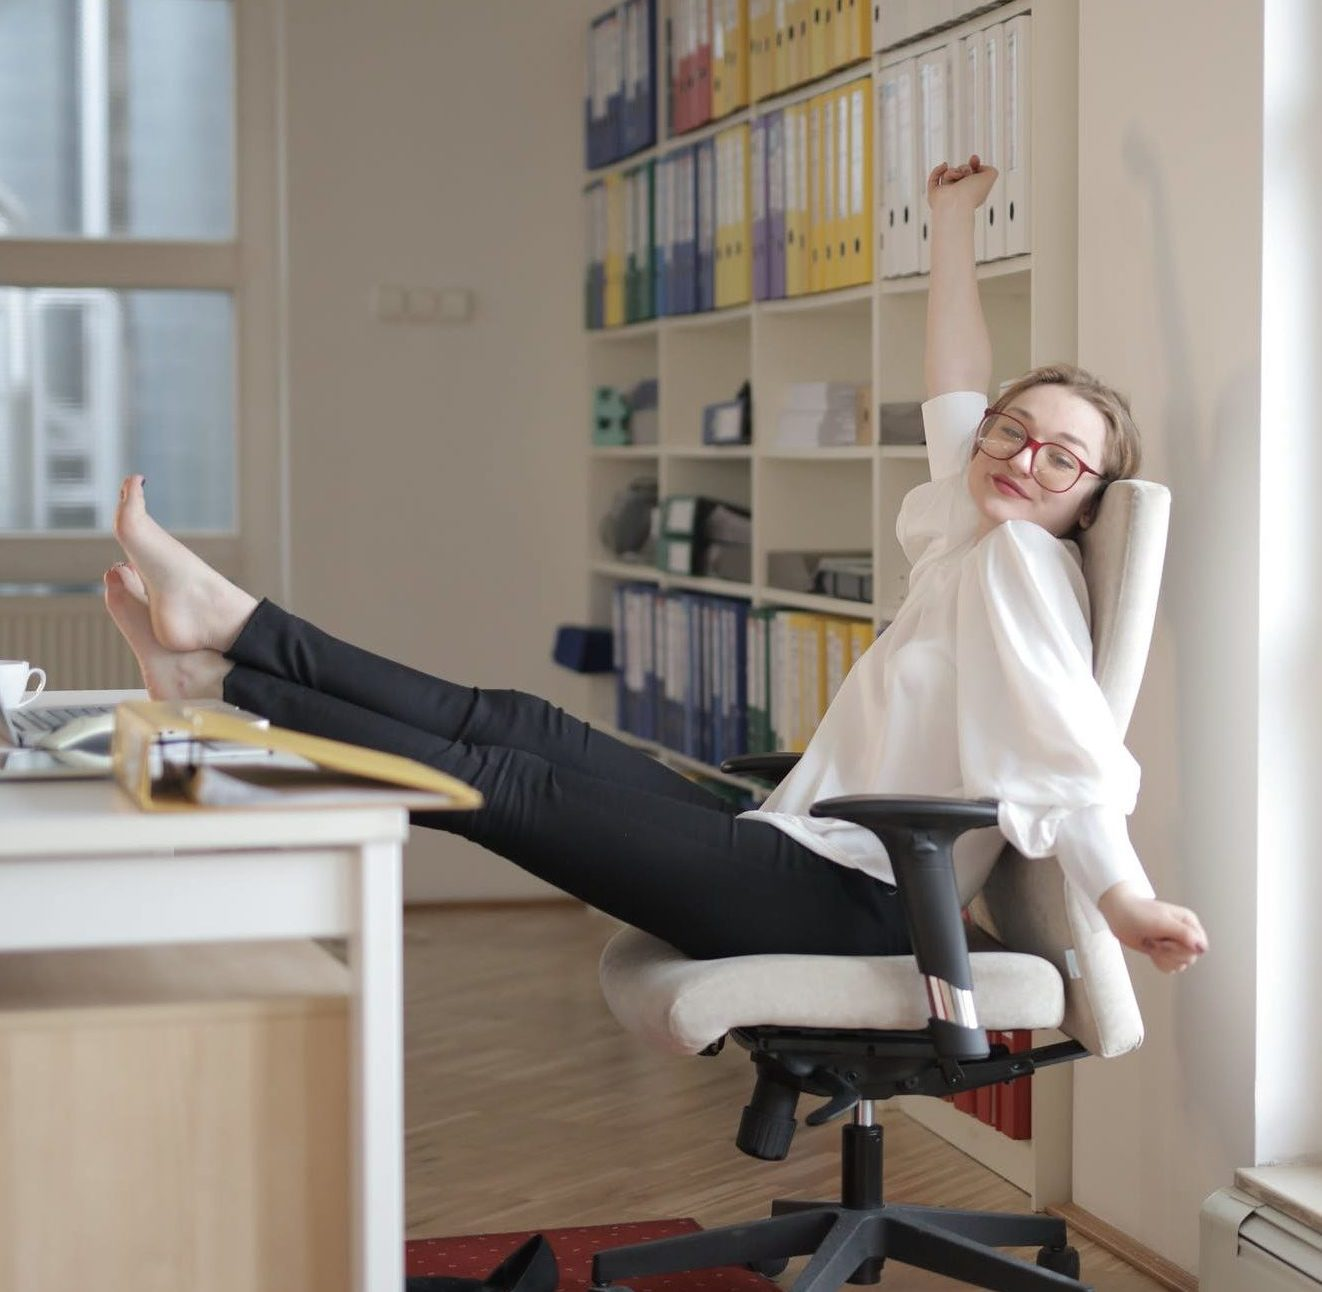 Woman relaxing in a office